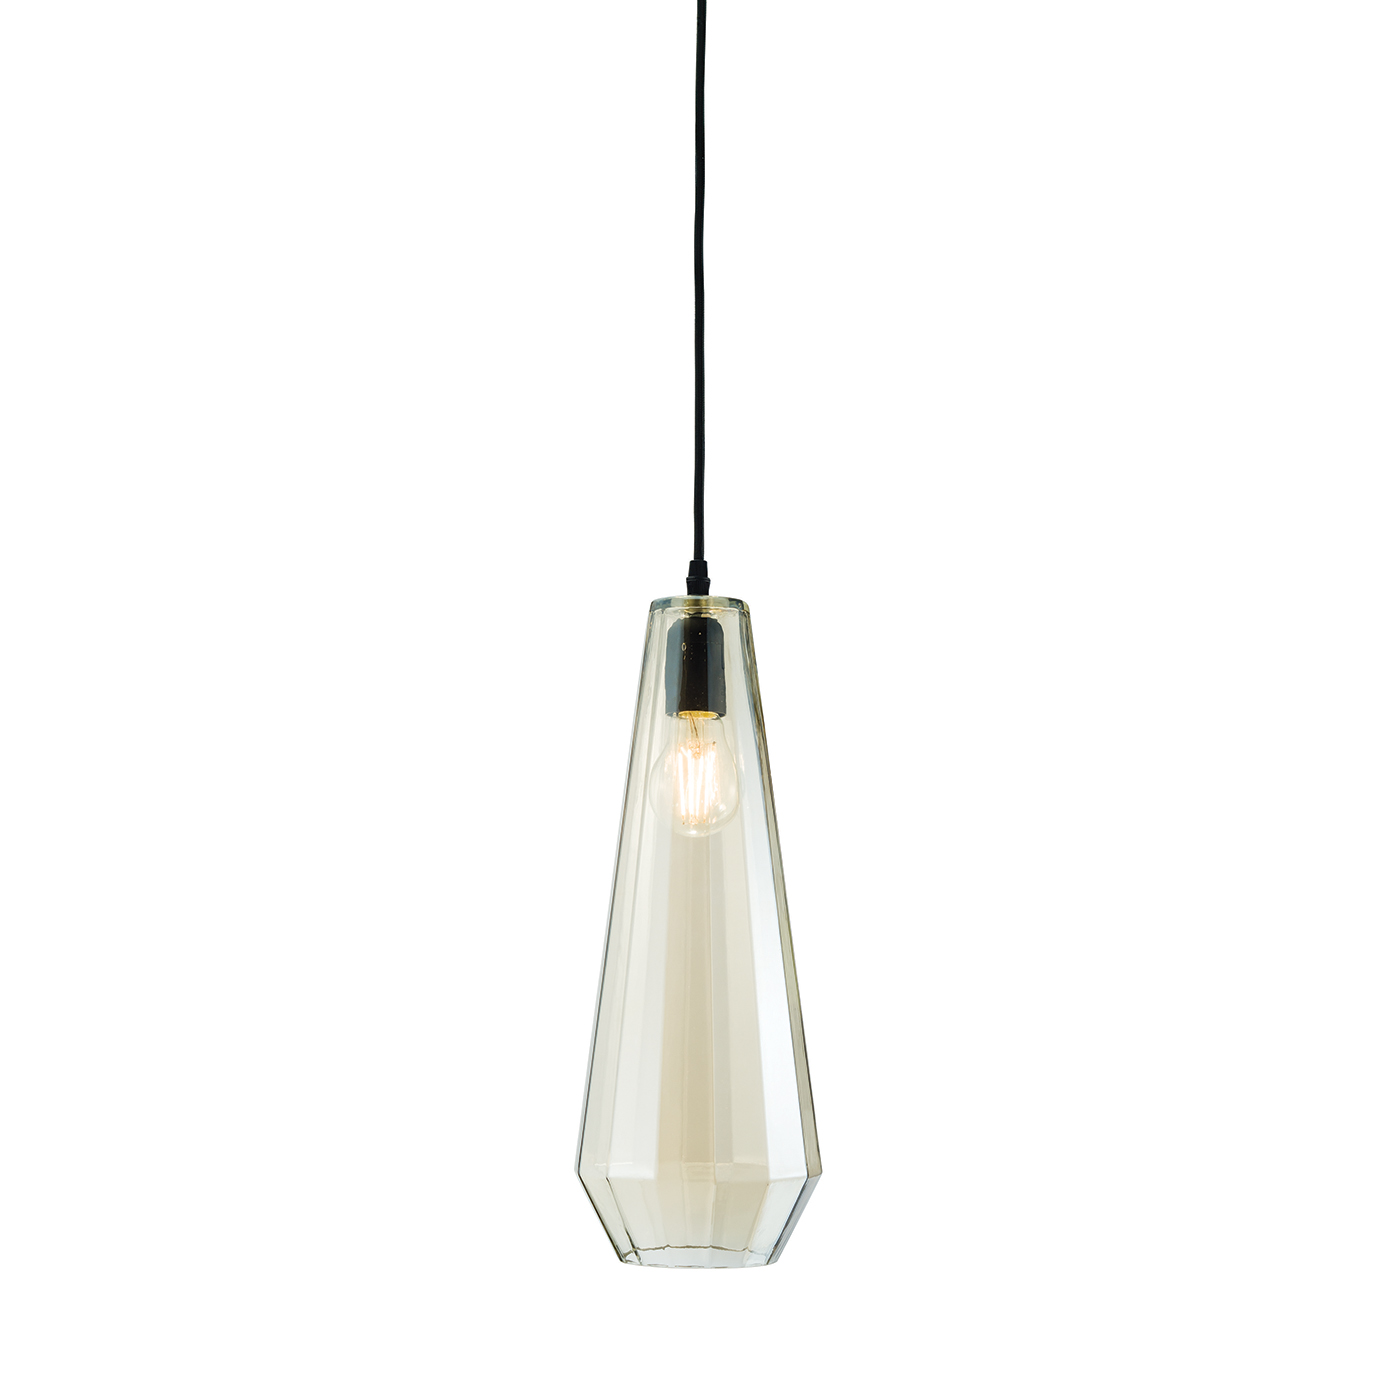 Endon Gibson pendant 1x 60W Cognac tinted glass & matt black